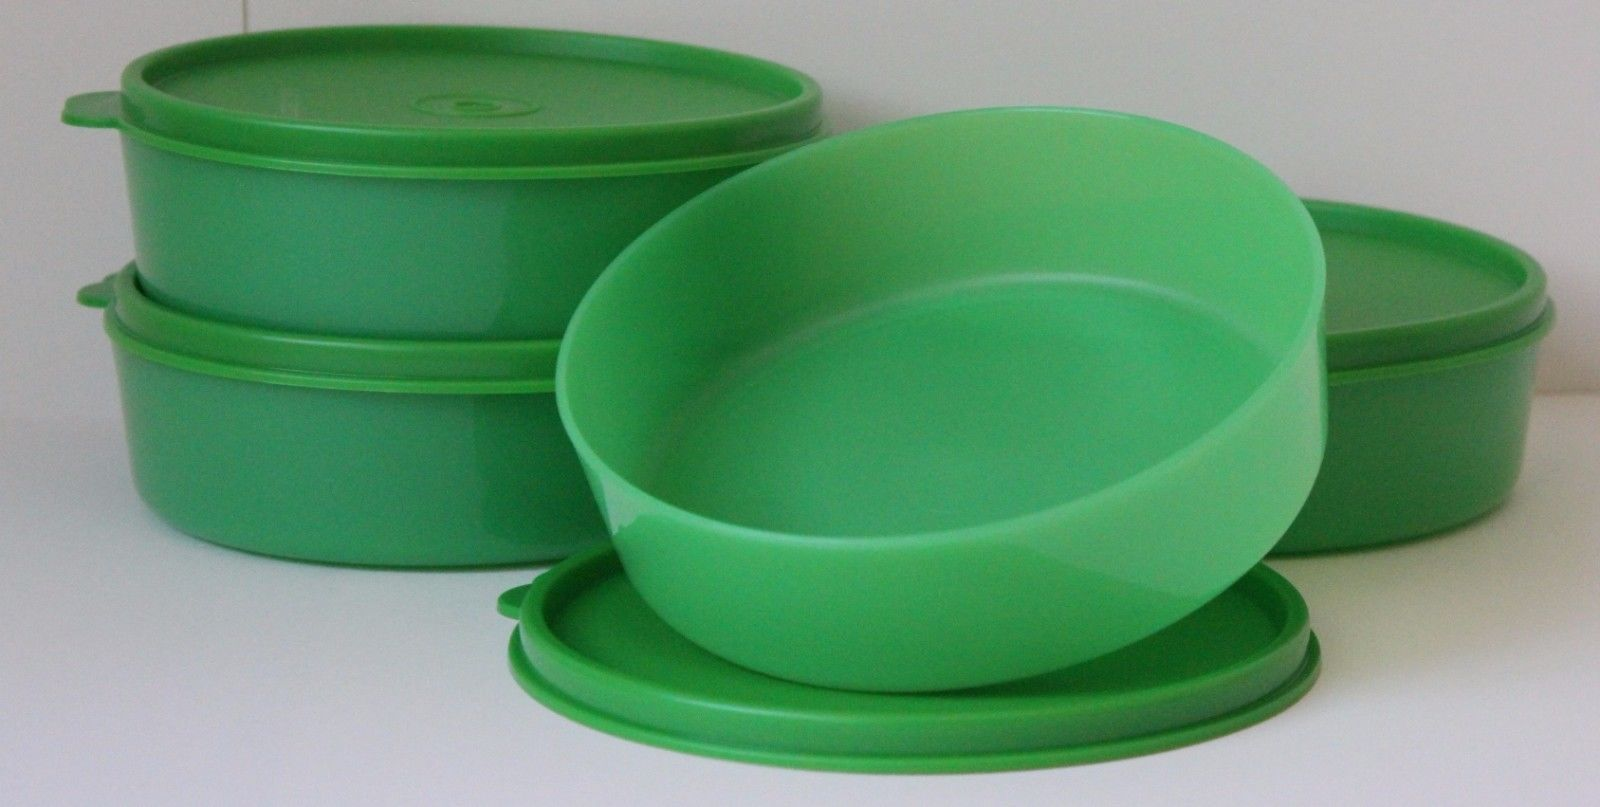 Tupperware Medium Wonder Cereal Bowl 1 1 2 Cup Set Of 4 Green New In Package Tupperware Cereal Bowls Cupping Set